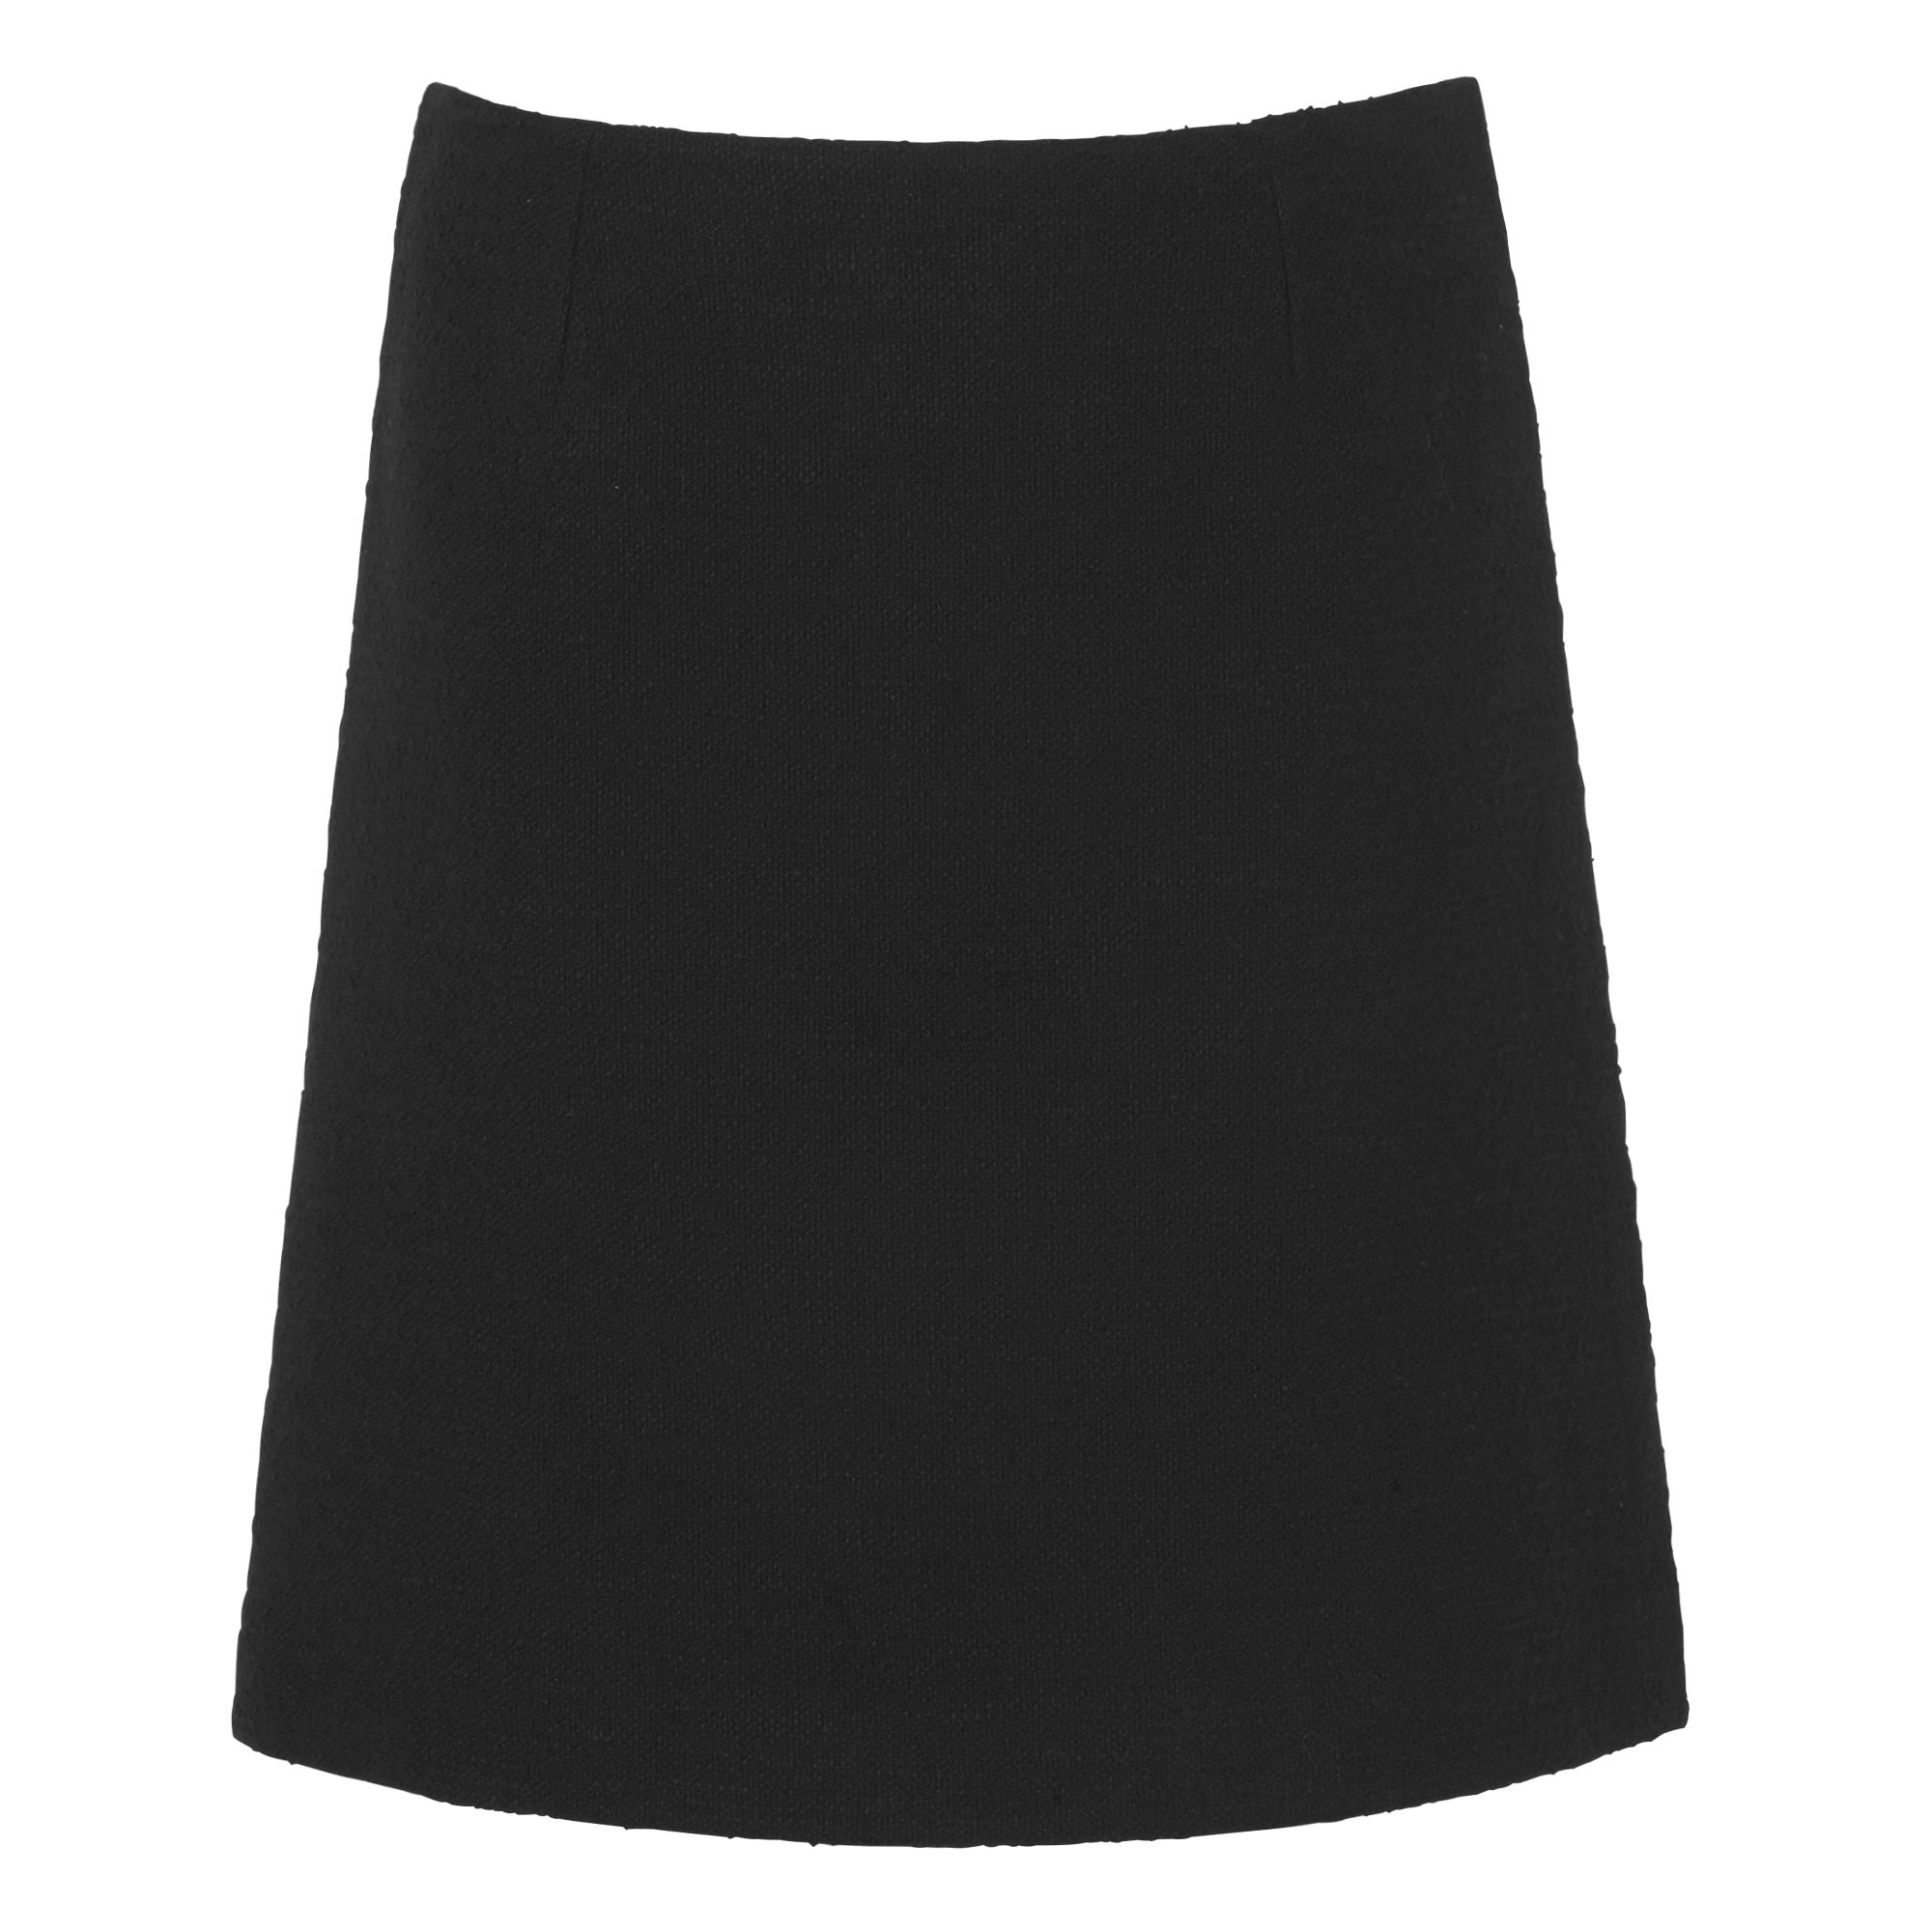 L.K. Bennett Gee Black Tweed Skirt, Black